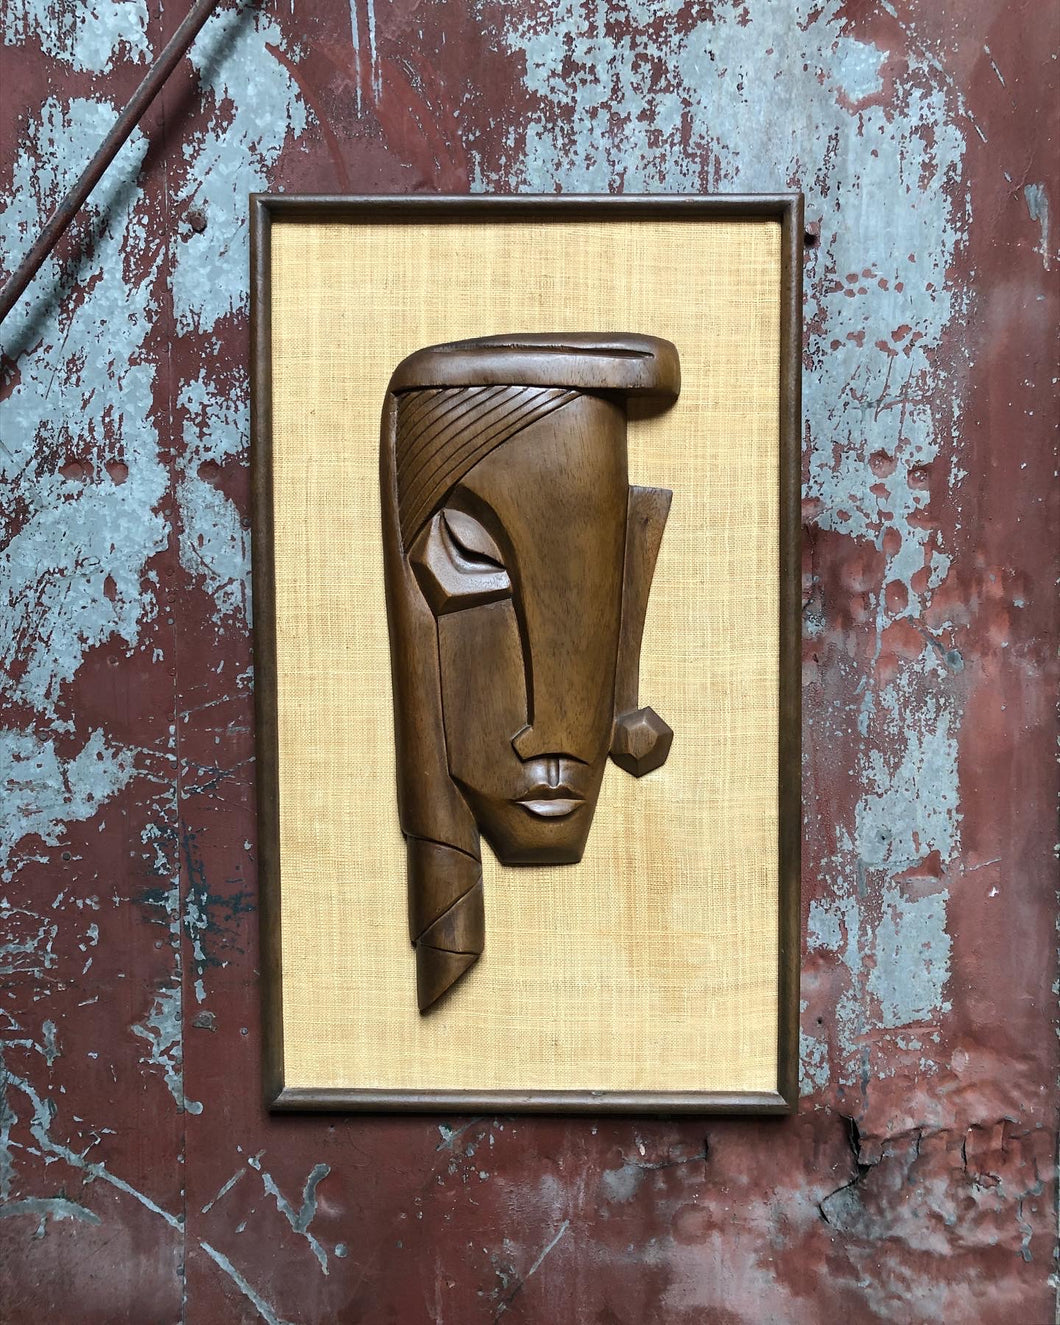 Abstract Wood Carving on Burlap